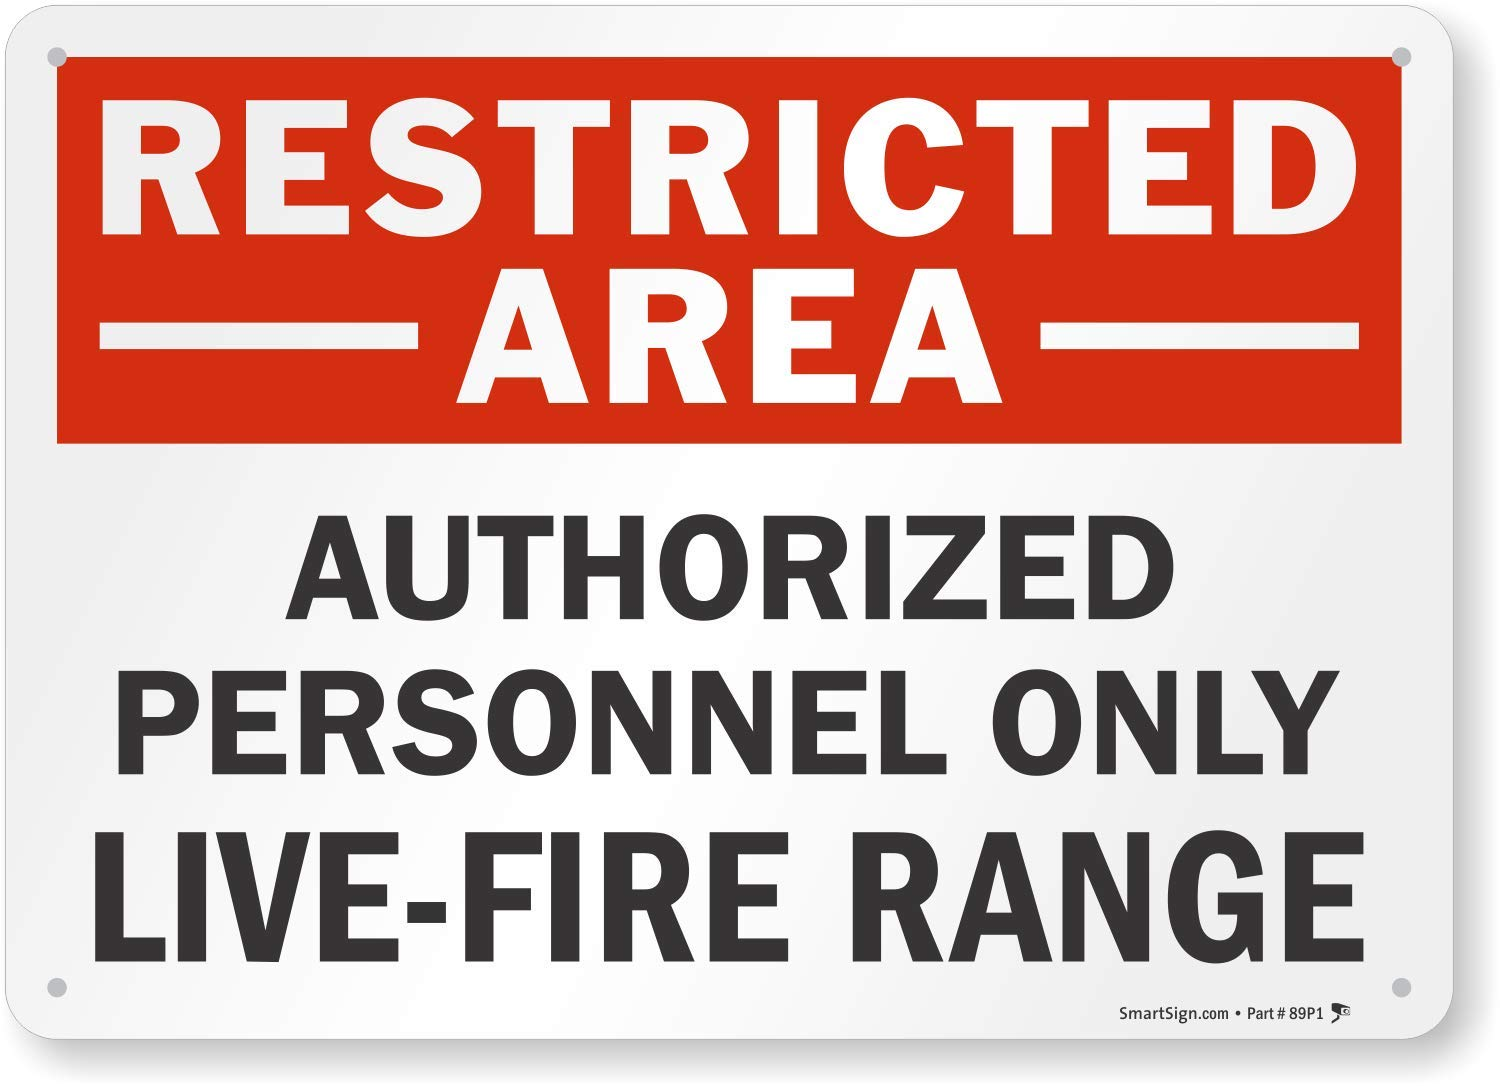 """SmartSign""""Restricted Area - Authorized Personnel Only, Live-Fire Range"""" Sign 